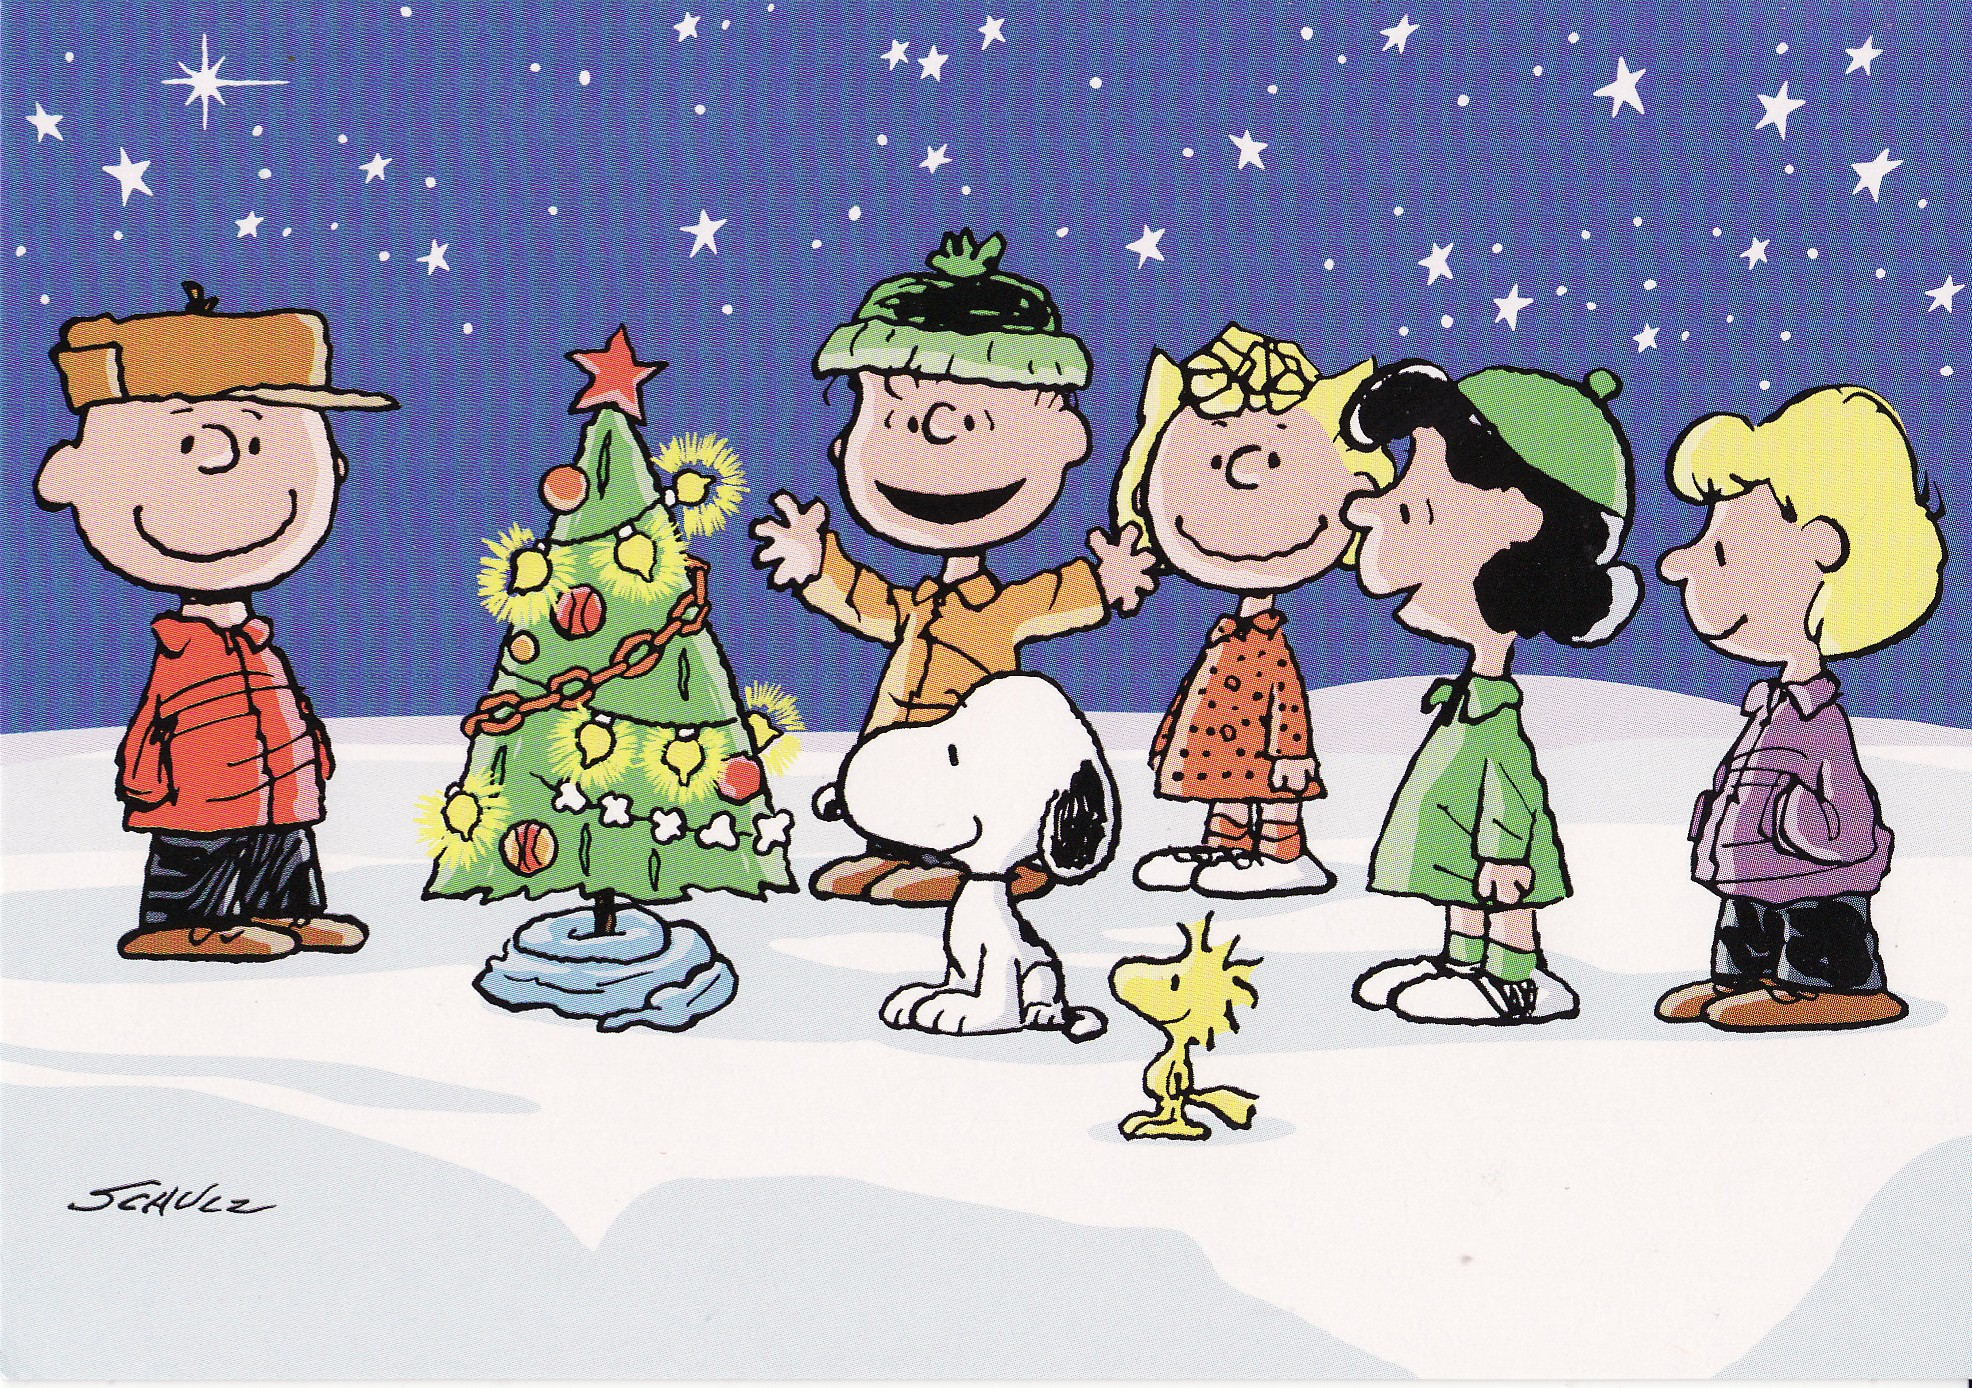 CHARLIE BROWN peanuts comics christmas g wallpaper 1972x1388 1972x1388